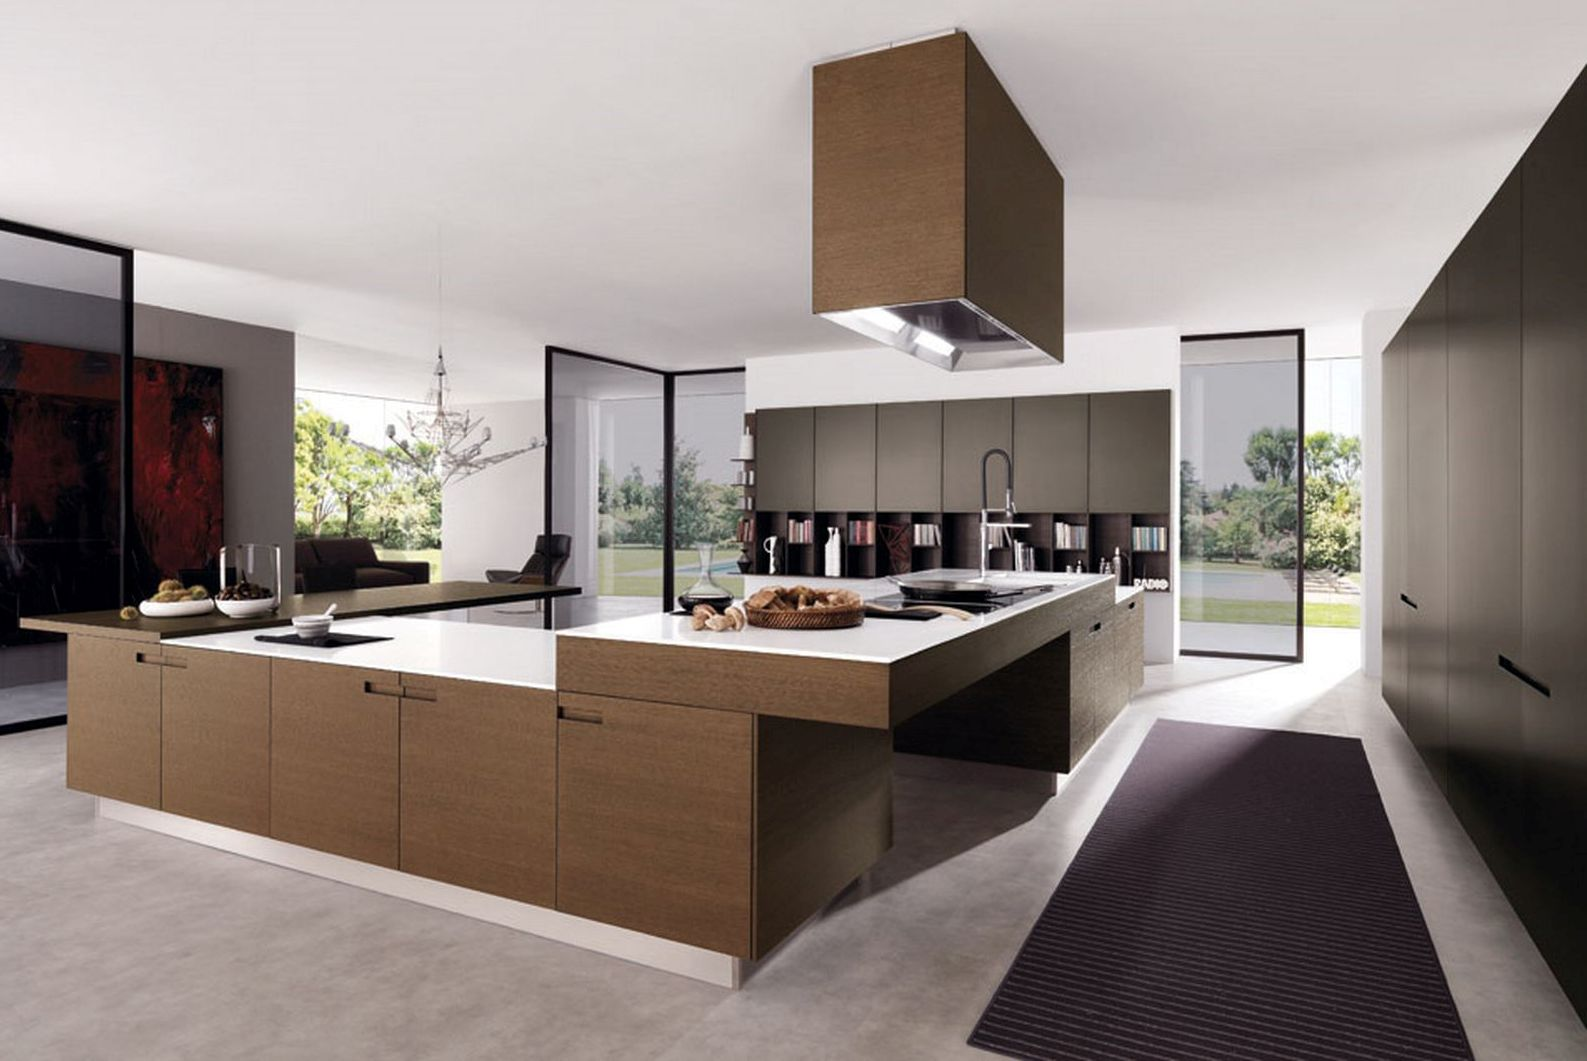 modern-kitchen-ideas-simple-design-7-on-kitchen-design-ideas